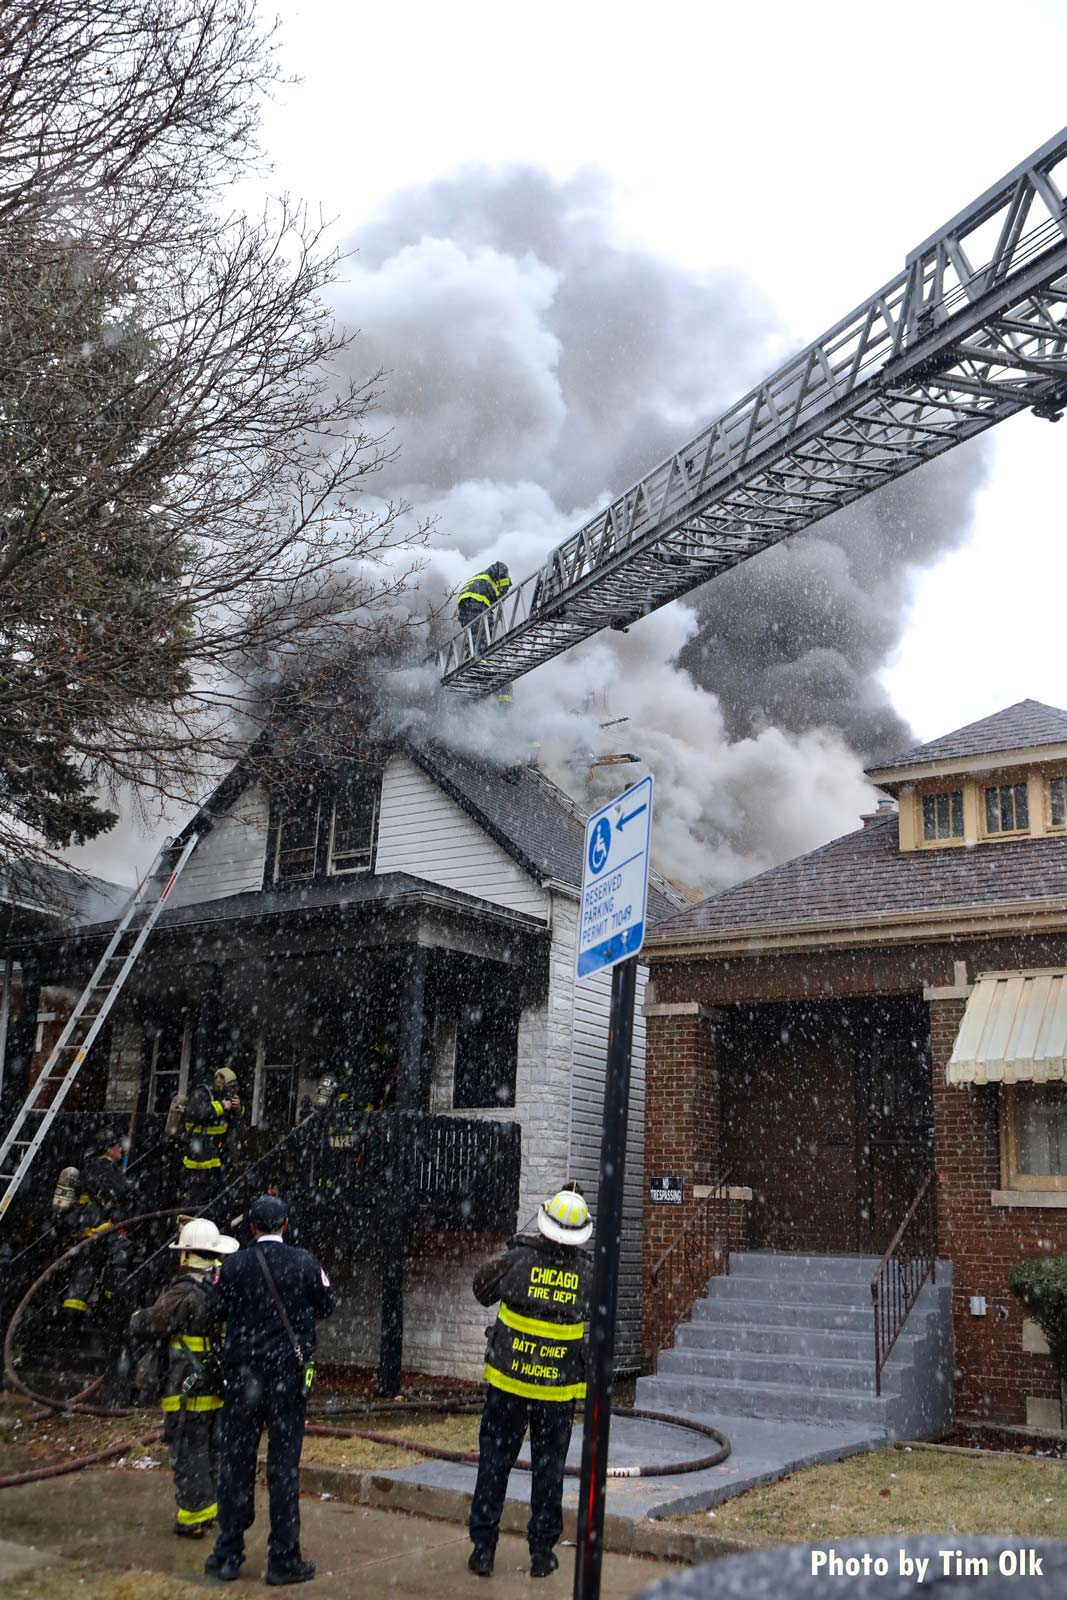 Aerial ladder directed to roof of burning building